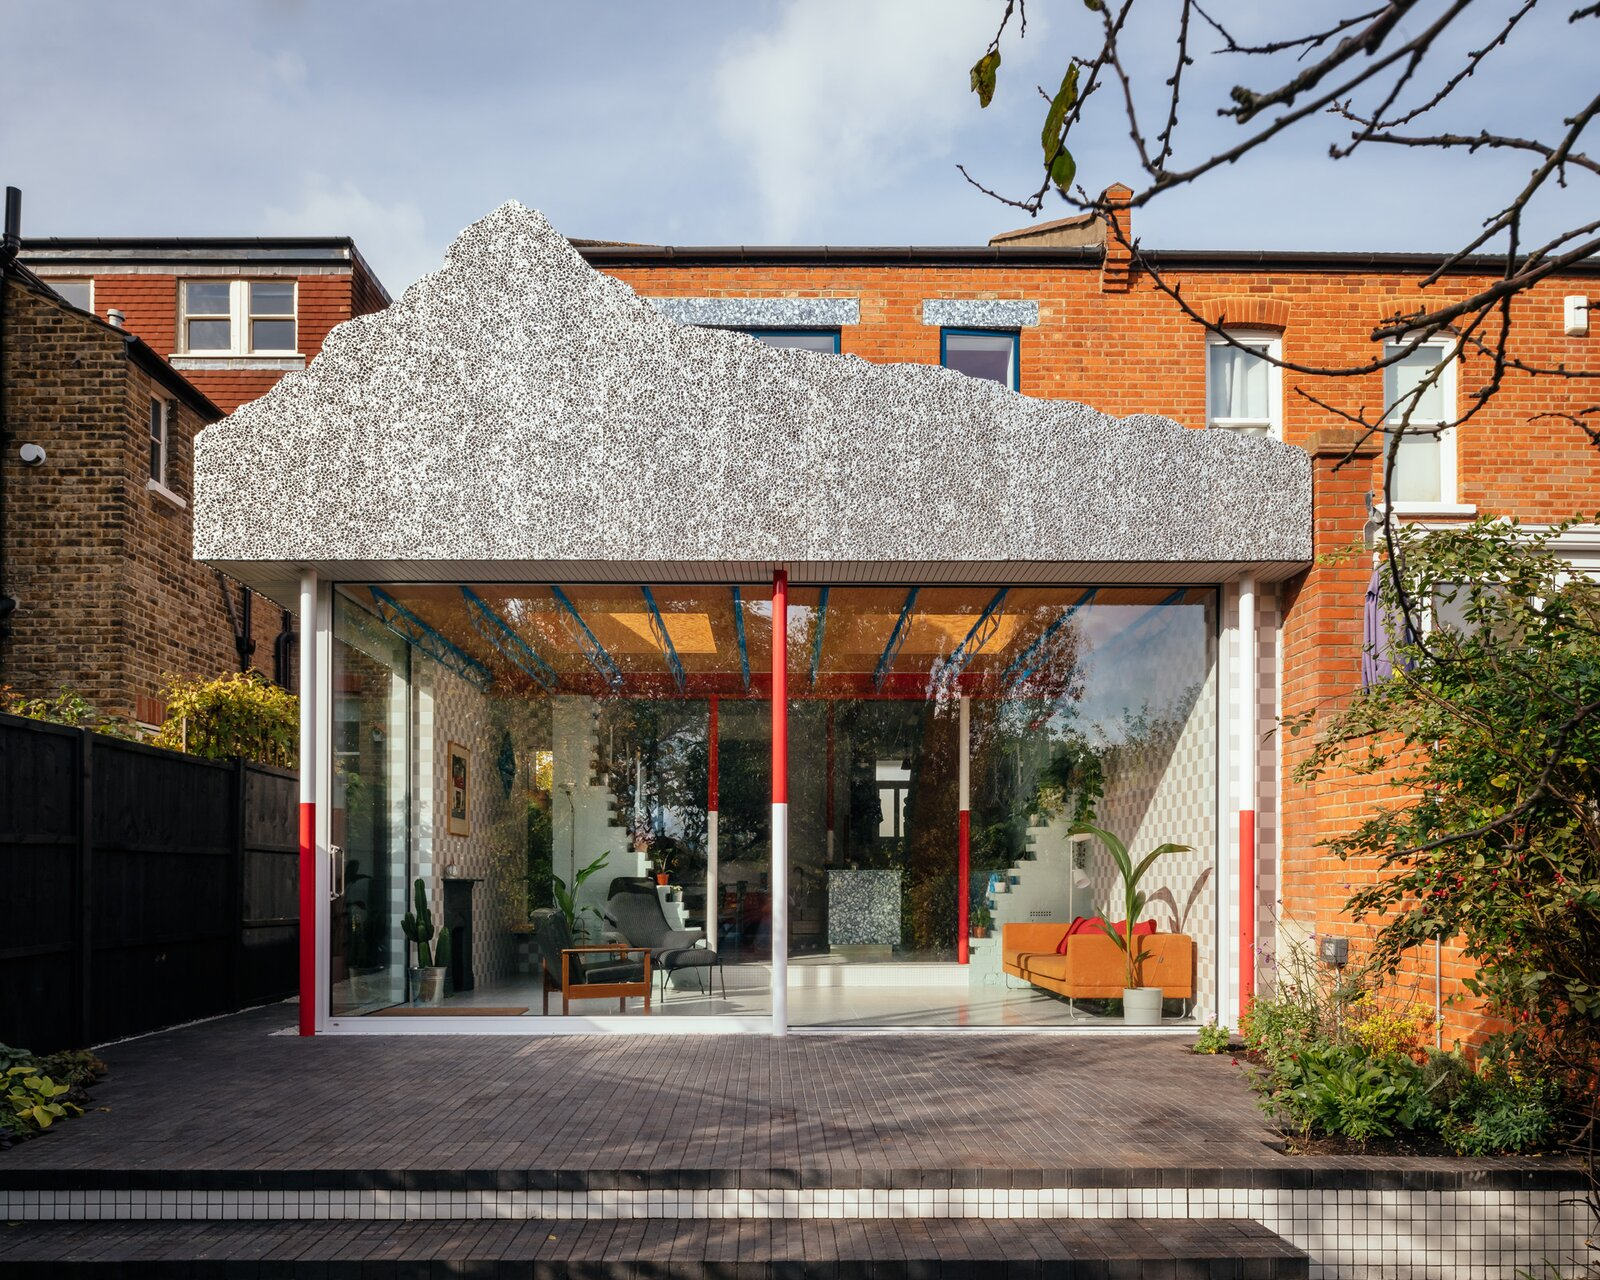 Before & After: A Faux Mountain Inspired by Disneyland Caps This Riotous Renovation in London